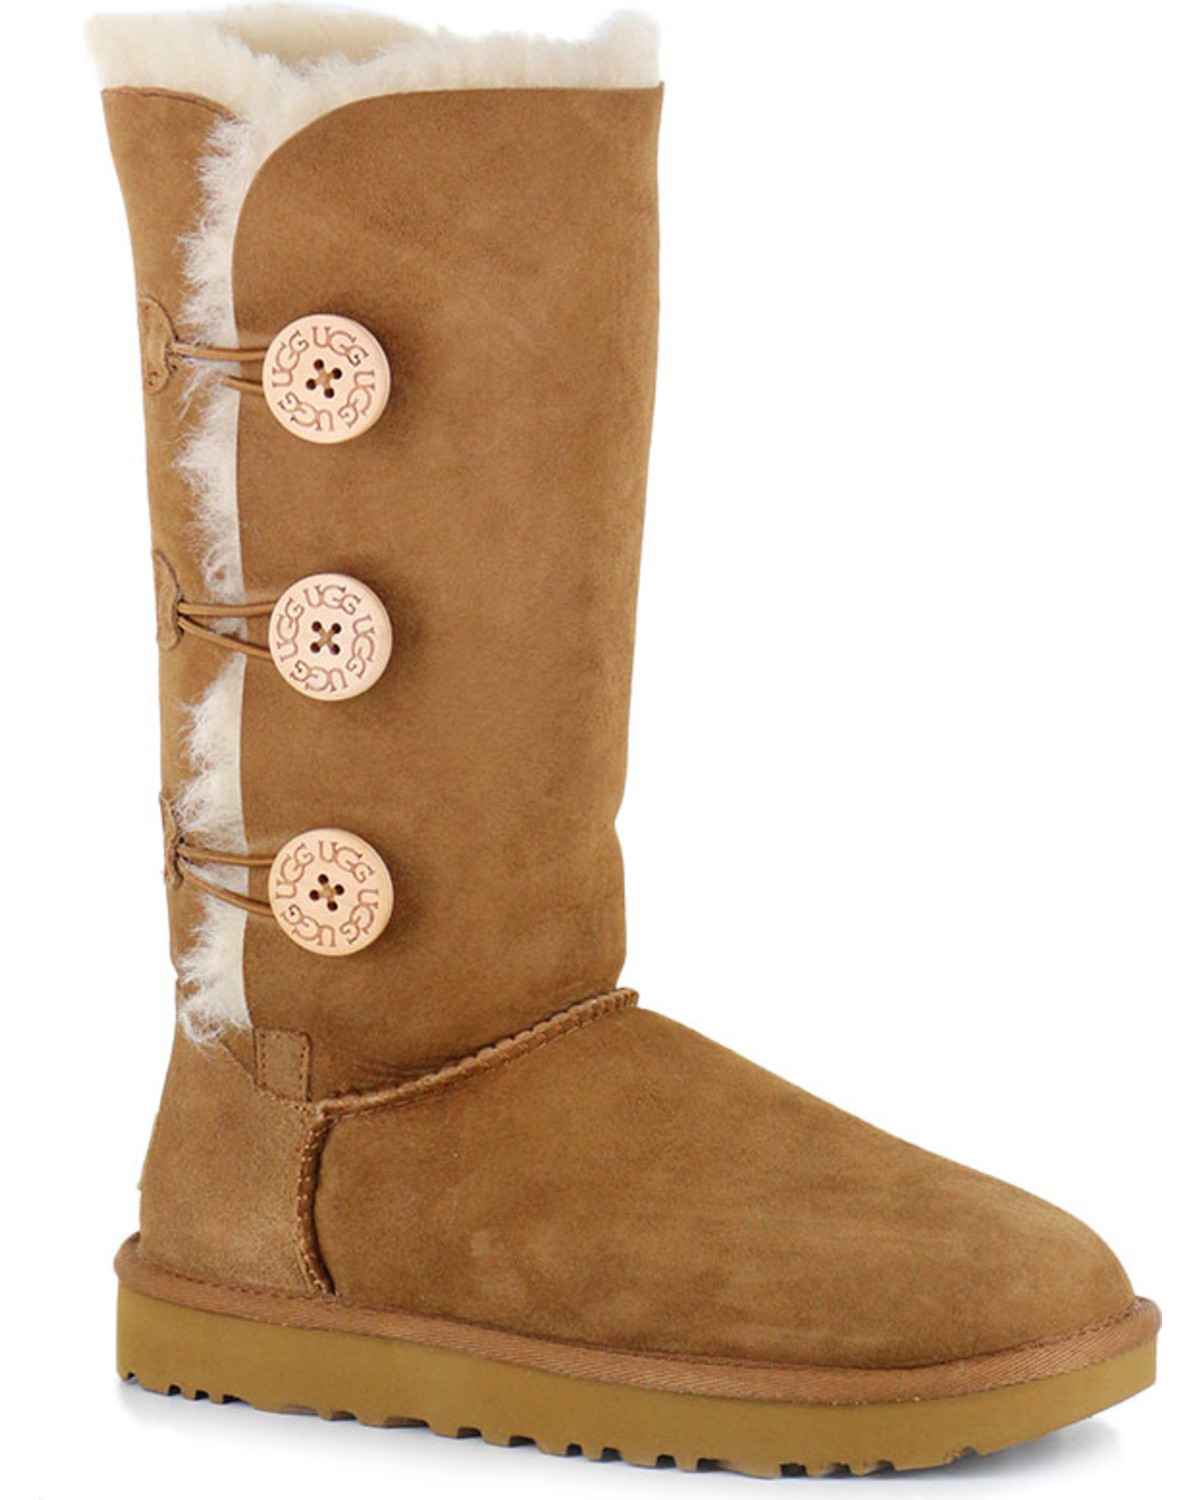 6d78ffab69a99 UGG® Women s Bailey Button Triplet II Water Resistant Boots